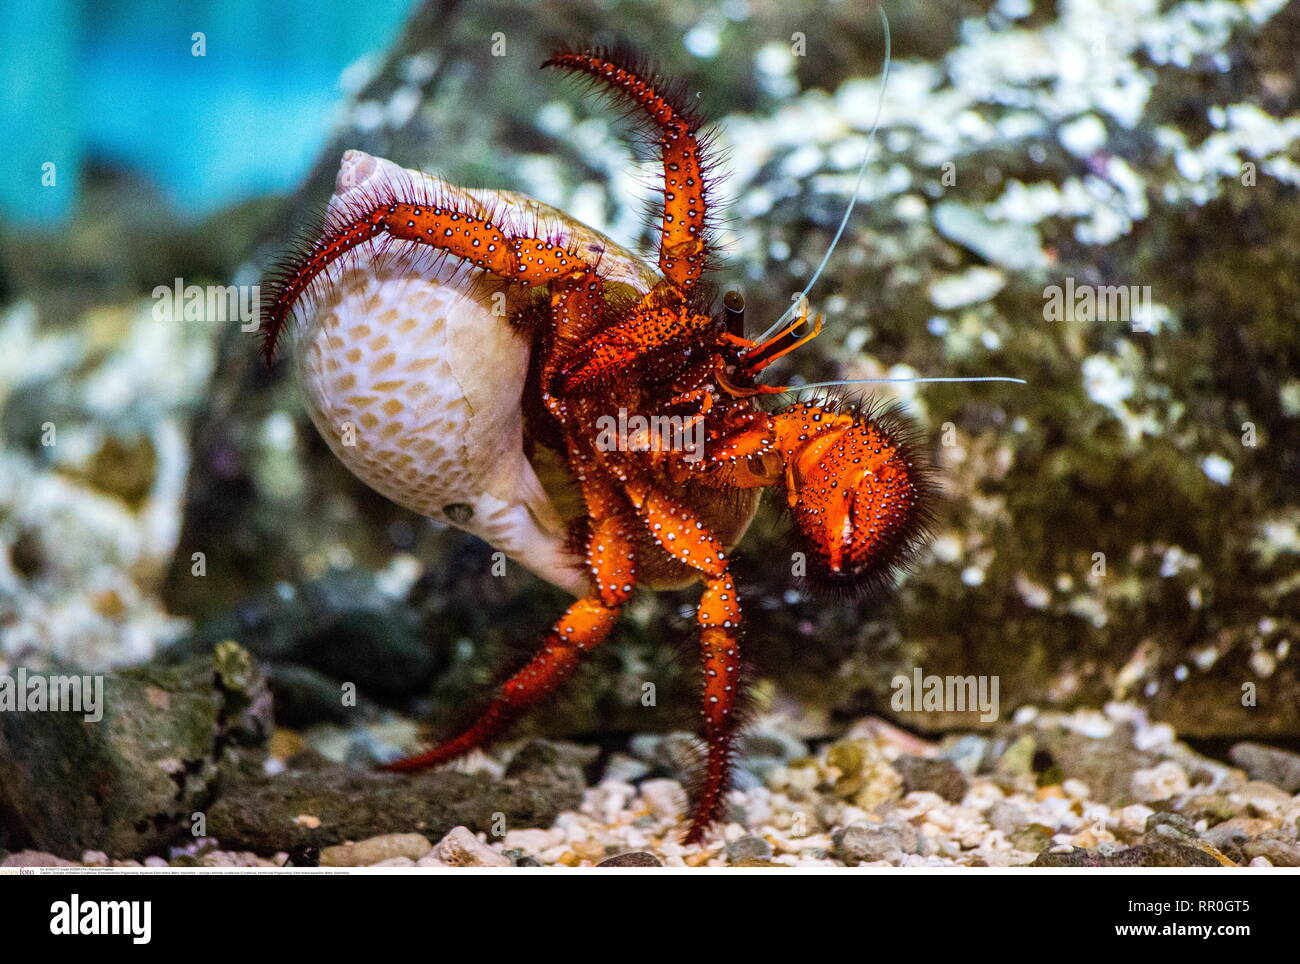 zoology / animals, crustacean (Crustacea), hermit crab (Paguroidea), Eden Island aquarium, Mahe, Seych, Additional-Rights-Clearance-Info-Not-Available - Stock Image